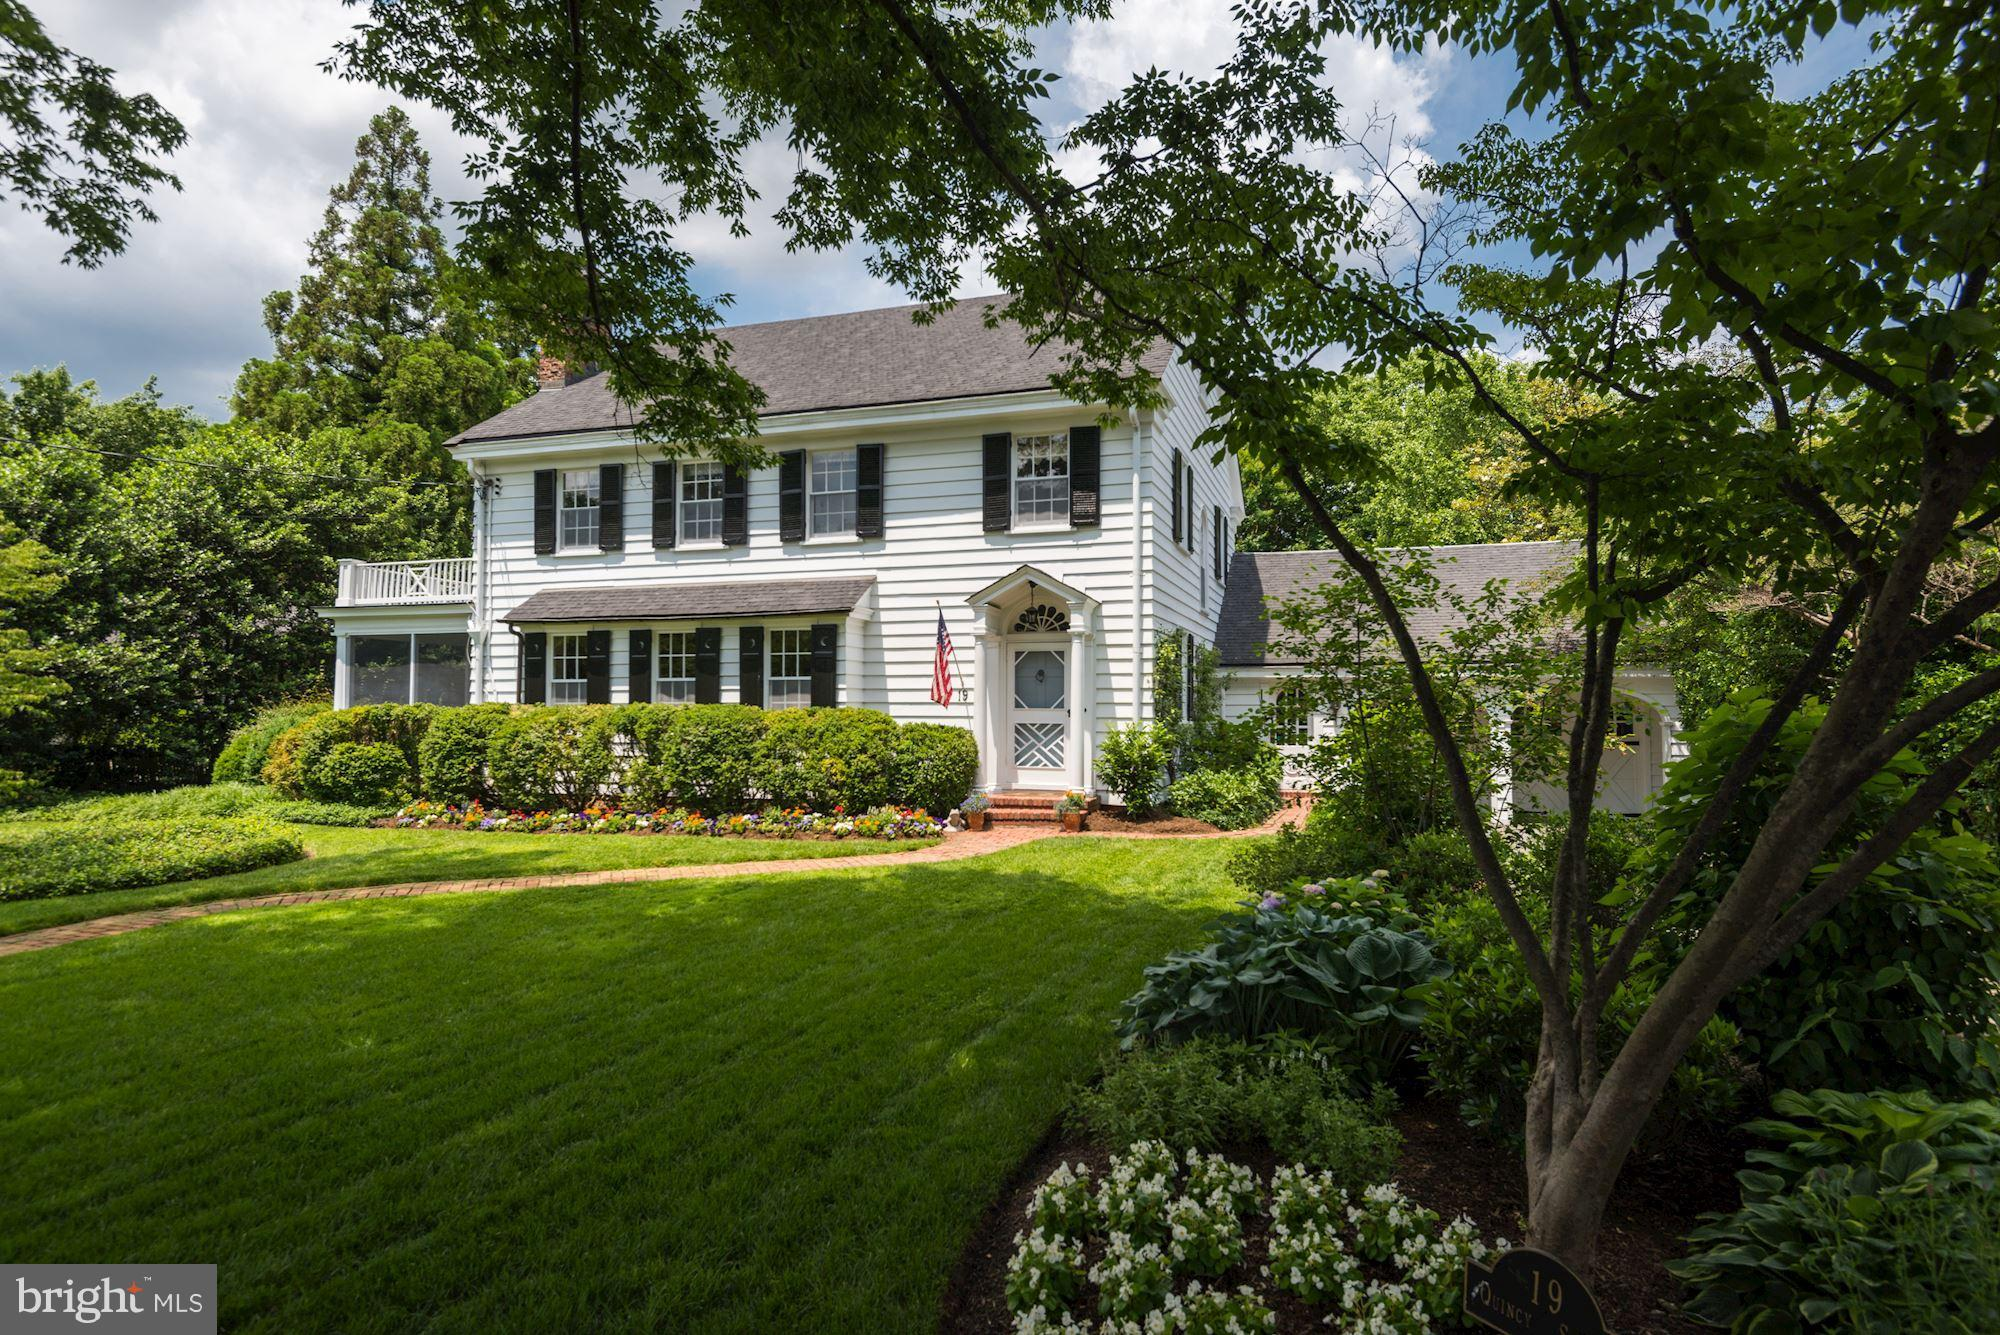 19 QUINCY STREET, Chevy Chase, MD 20815